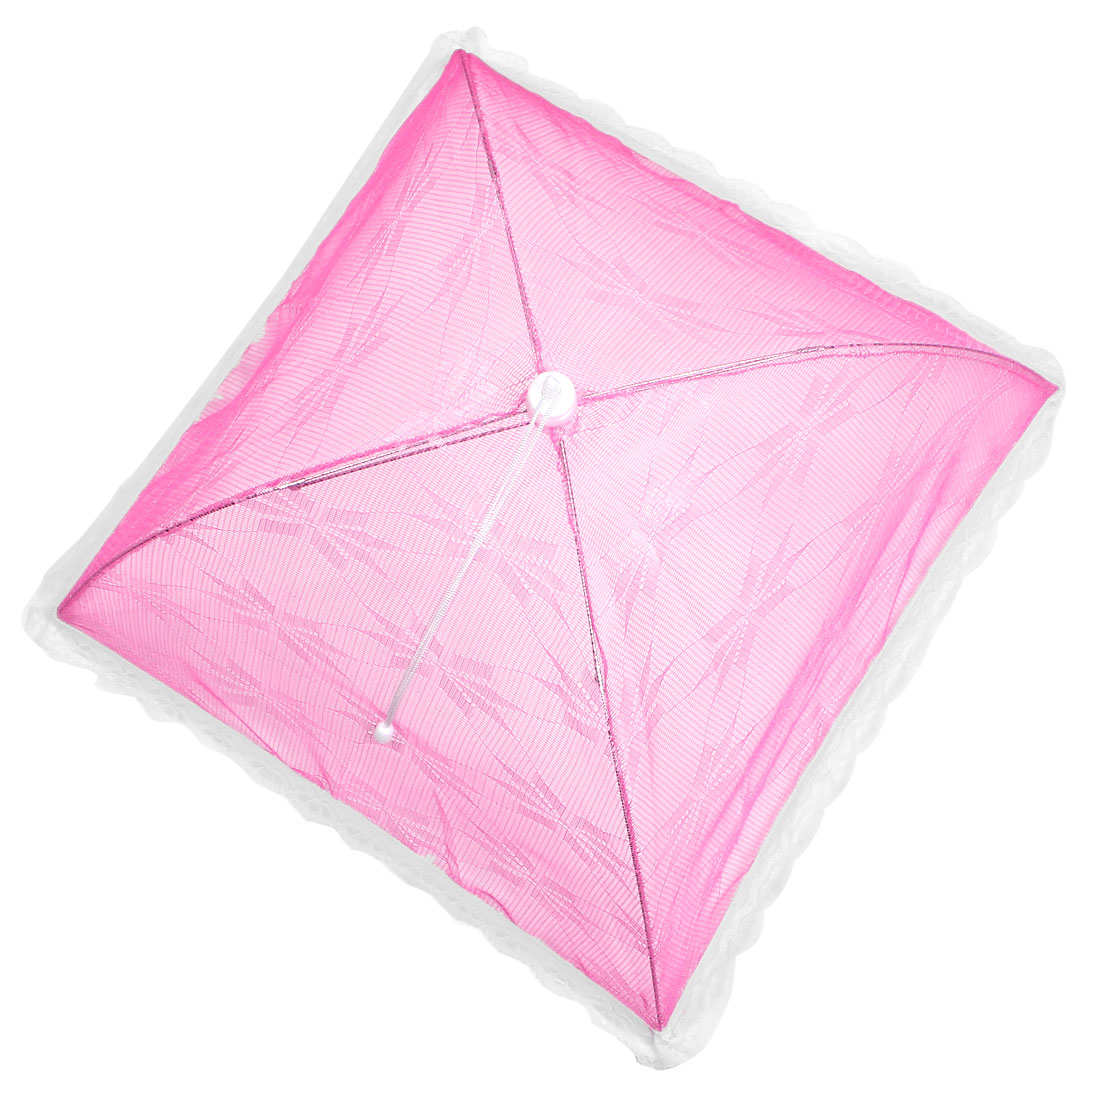 52cm x 52cm Camping Picnic Lace Decor Folding Umbrella Food Cover Pink